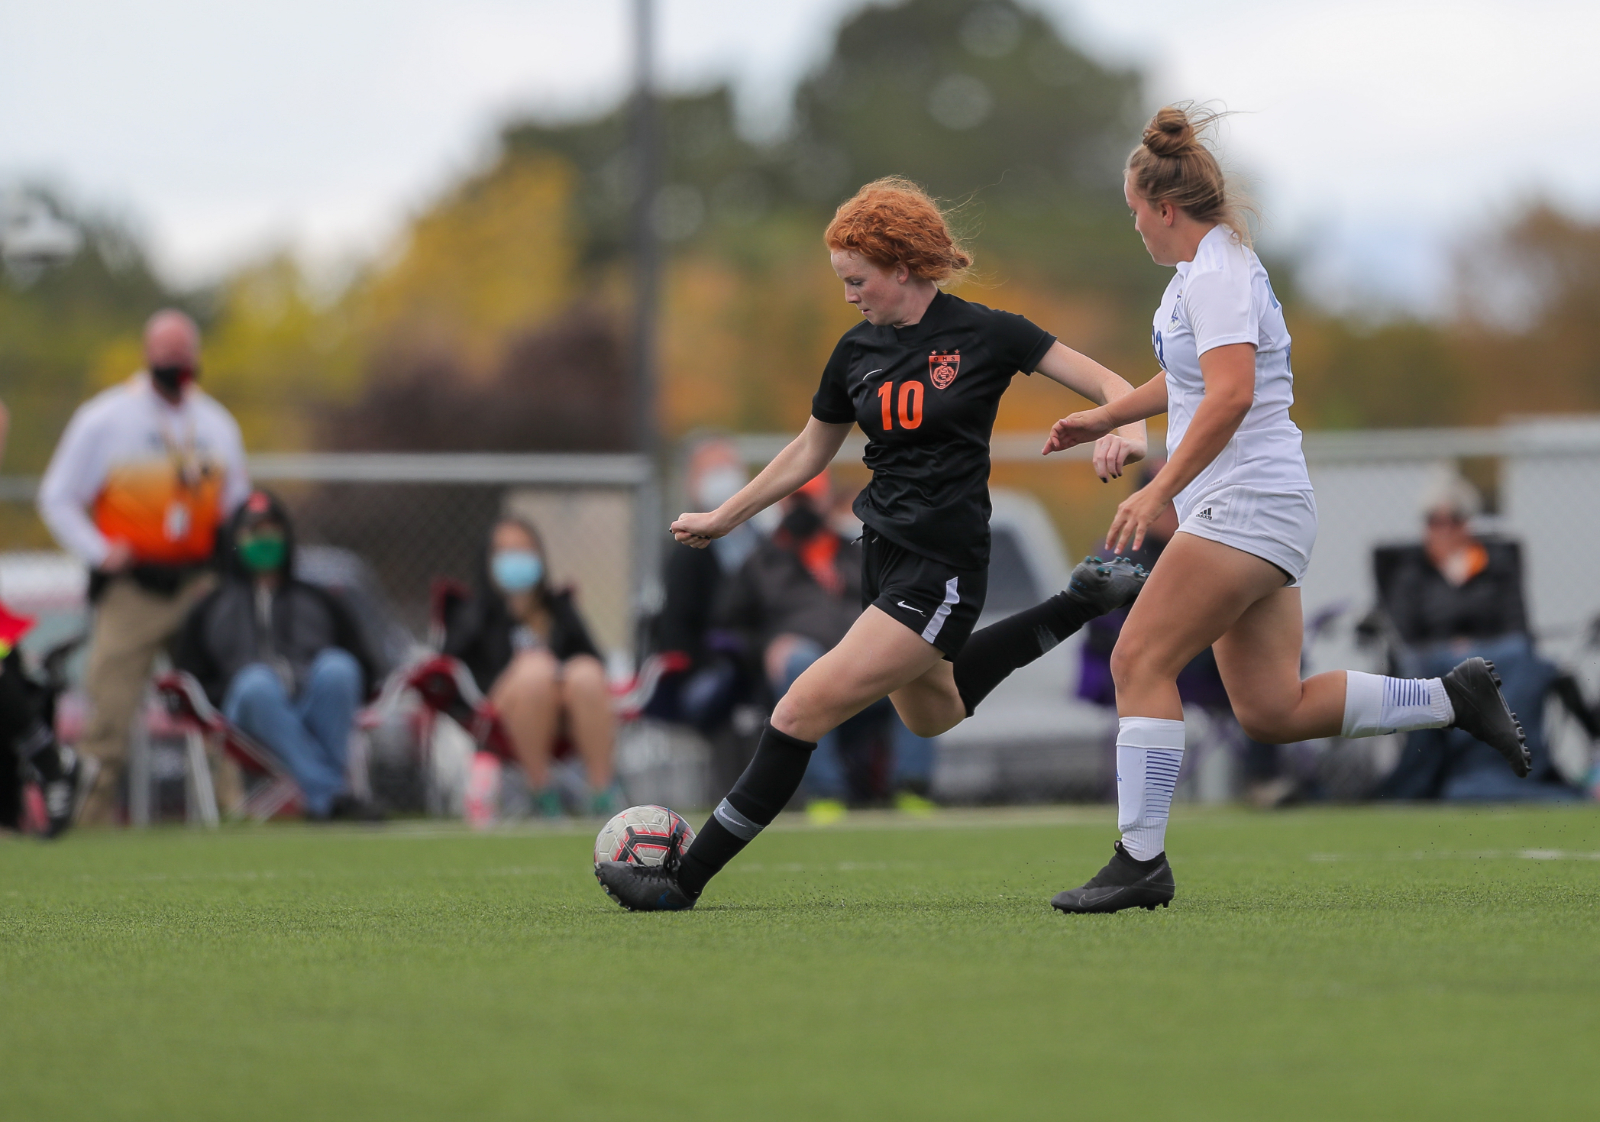 Ogden Girls Soccer vs. Dixie (Playoff Game 2020) (Photo Credit – Robert Casey)